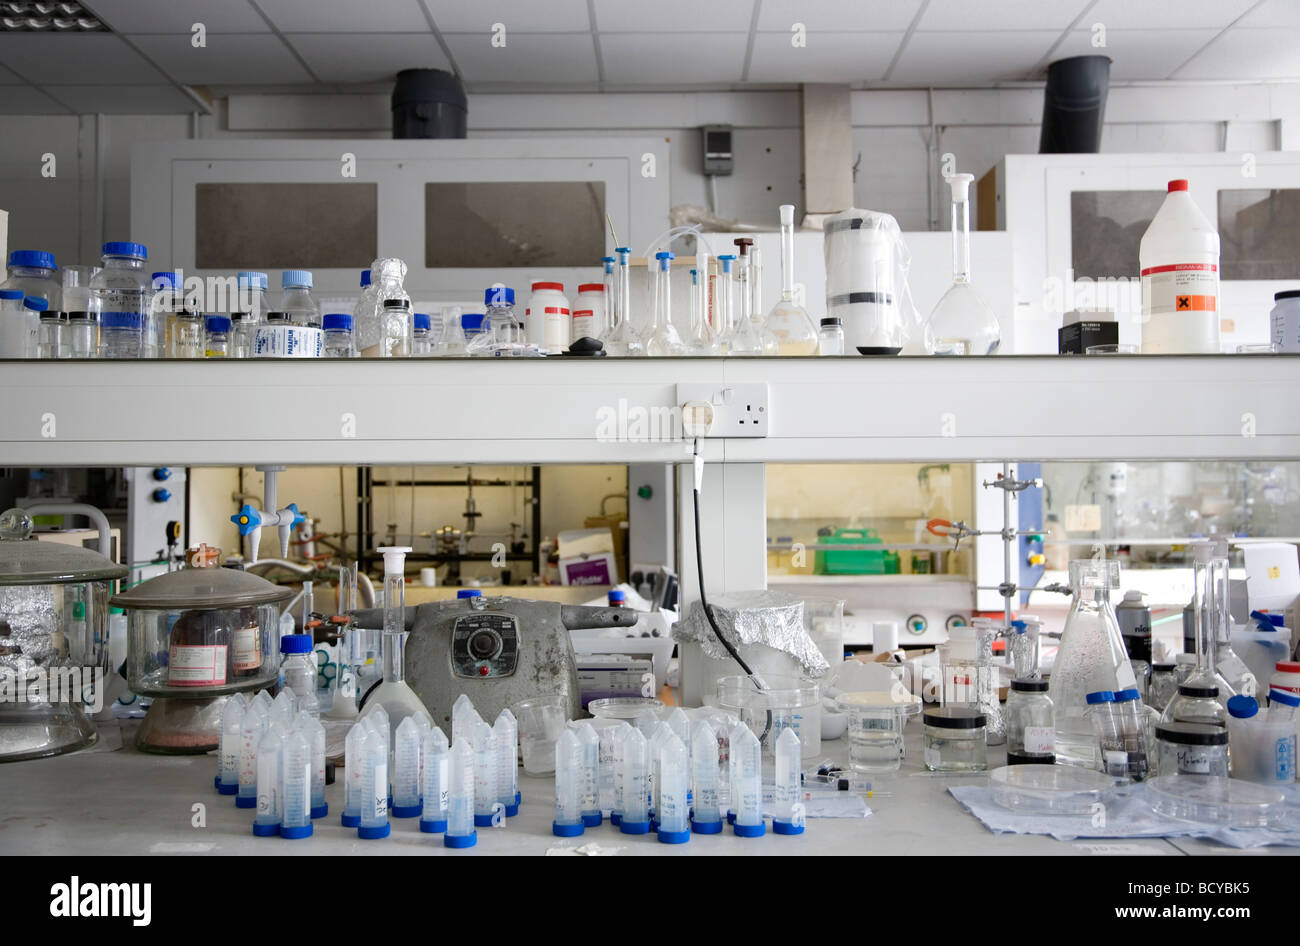 Busy Lab Shelves In Laboratory Stock Photo: 25188105 - Alamy